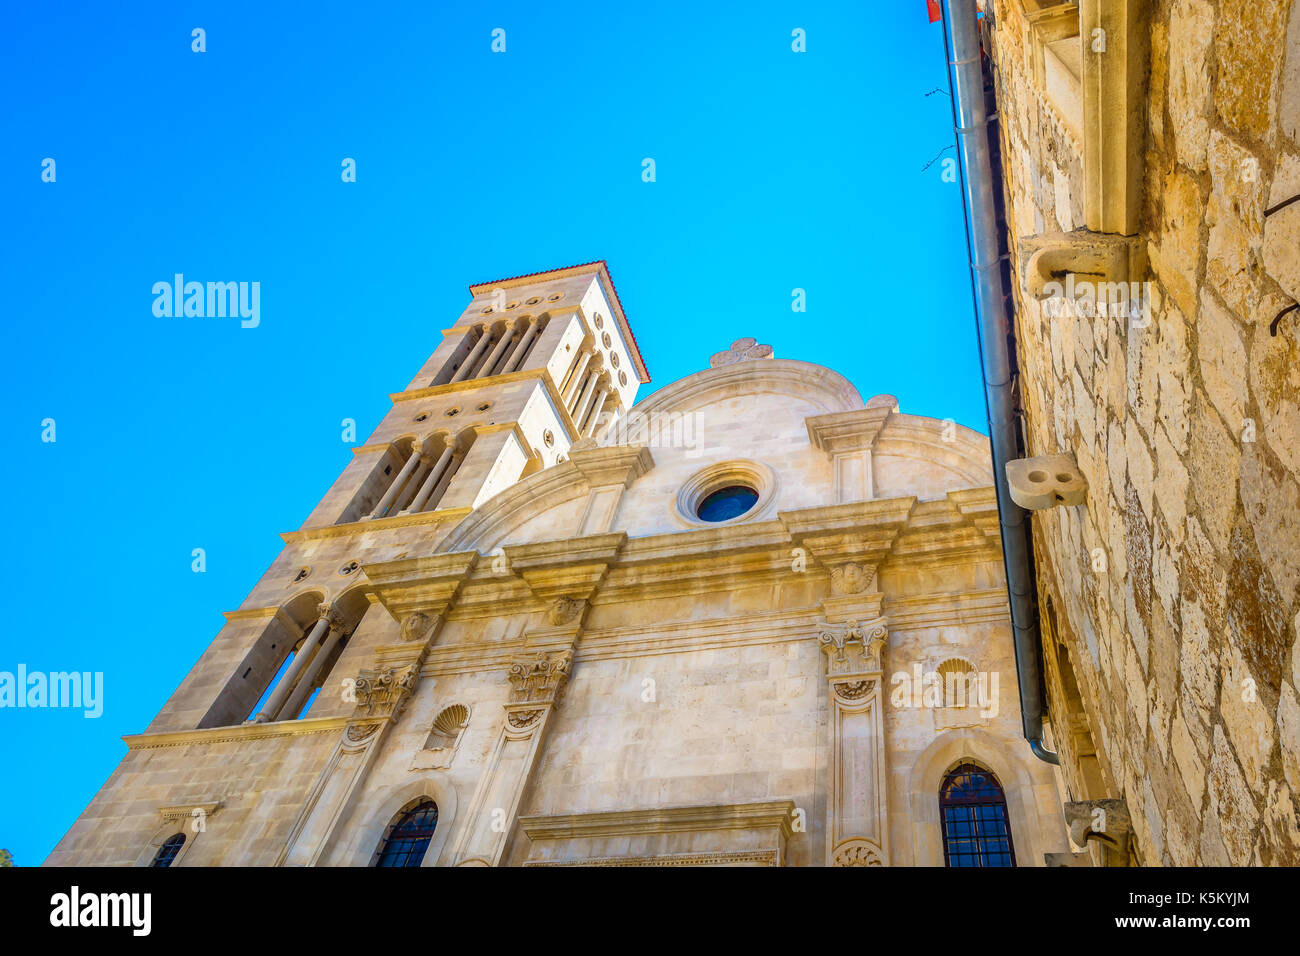 View at old famous cathedral in town Hvar, Croatia. Stock Photo